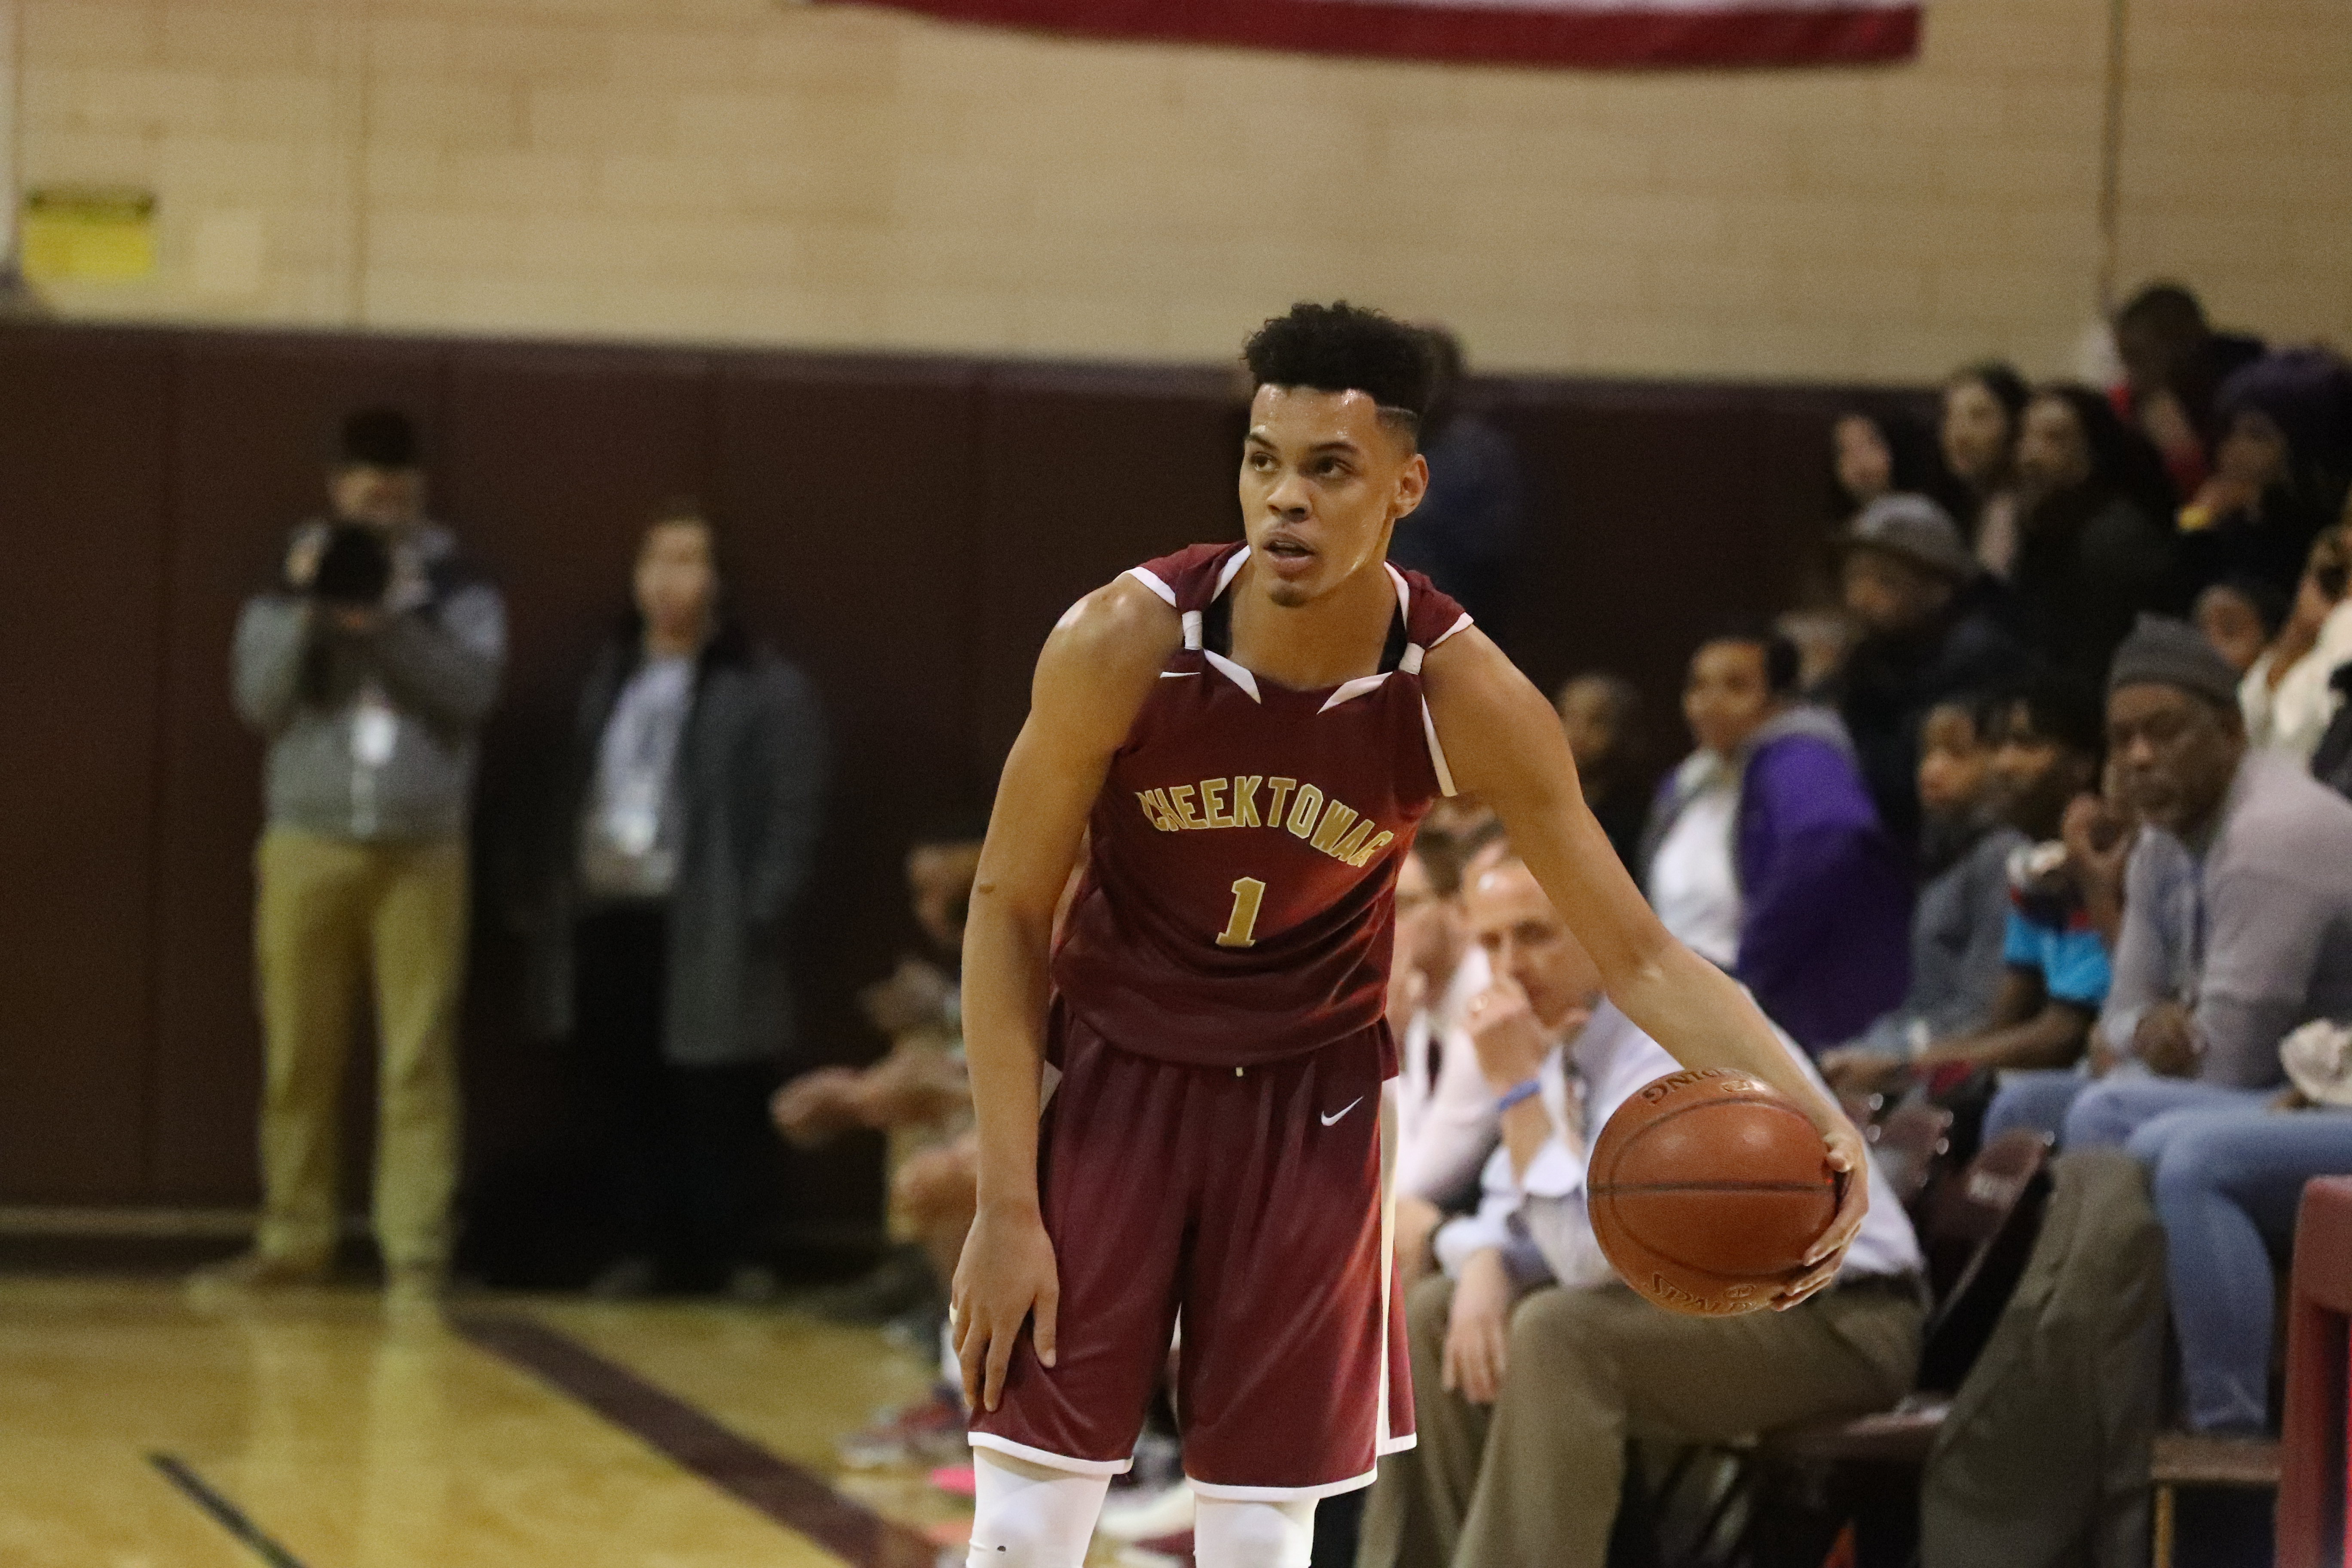 Cheektowaga's Dominick Welch is one of seven finalists for the state's Mr. Basketball honor.  (James P. McCoy/Buffalo News)